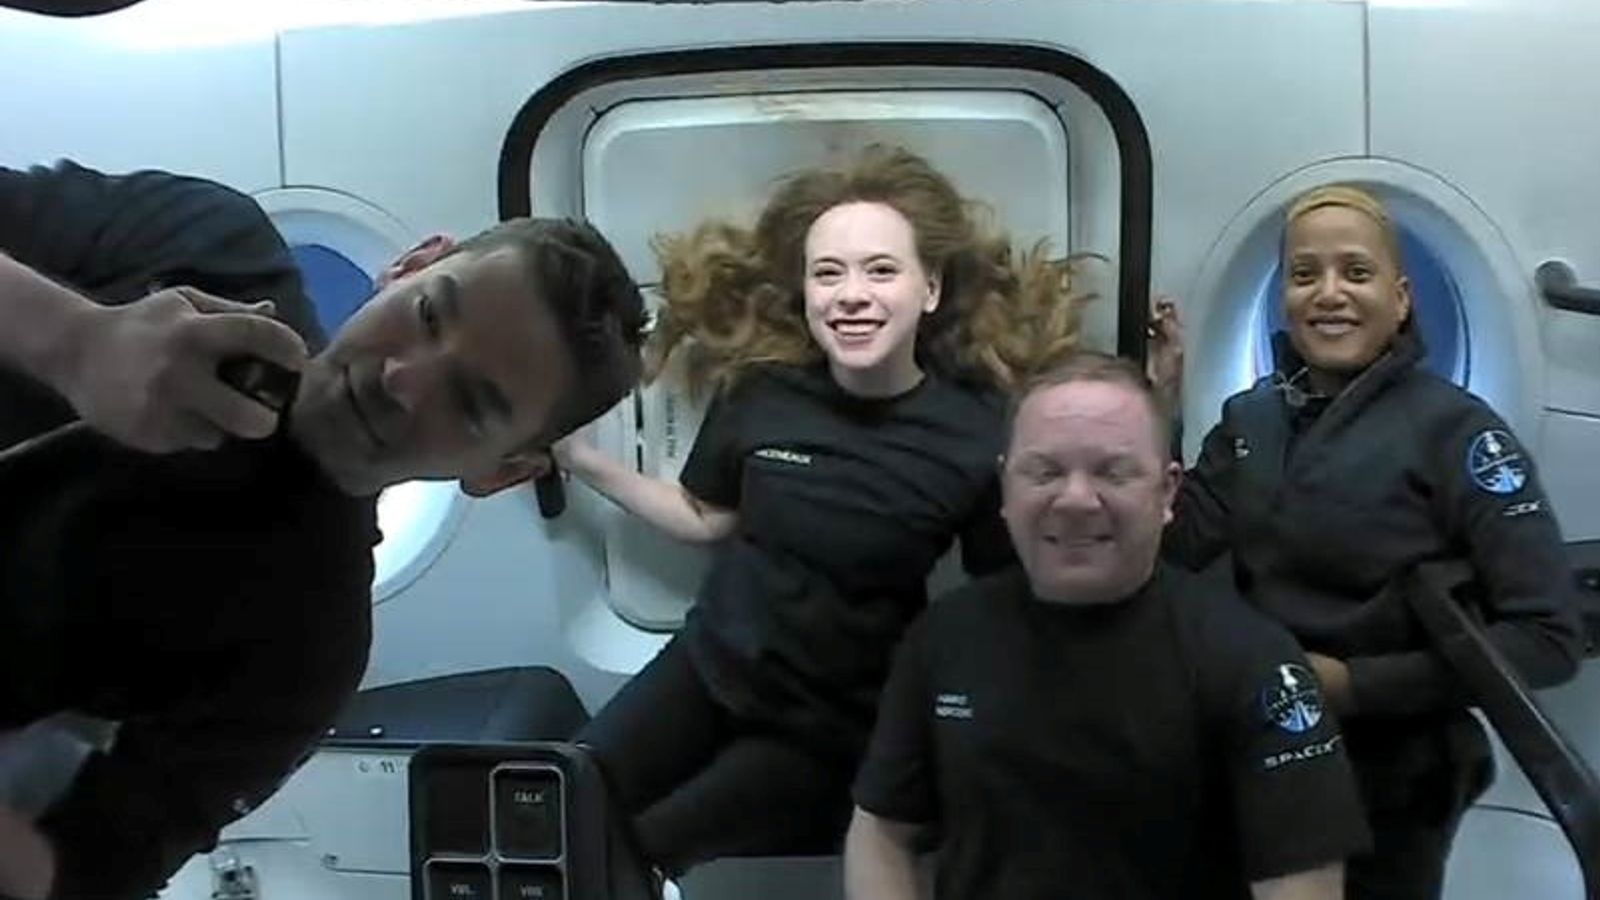 SpaceX Inspiration4 mission: Crew appear in live video featuring weightless flips and ukulele performance